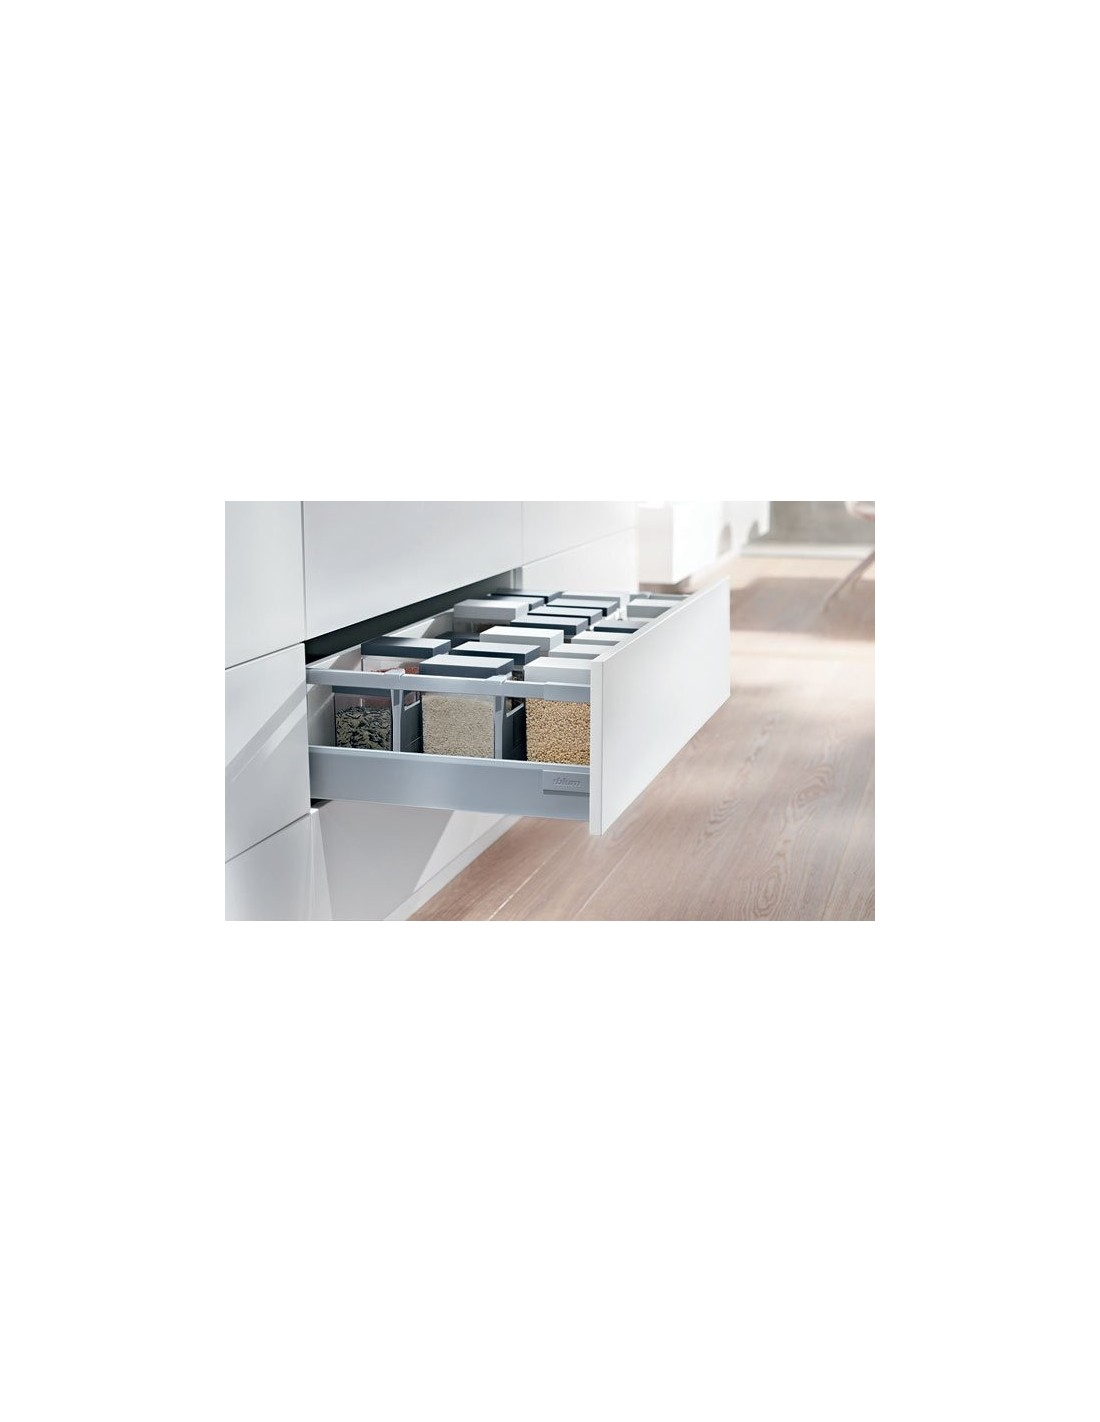 Blum antaro d height pan drawers grey soft closing for Kitchen cabinets 450mm depth